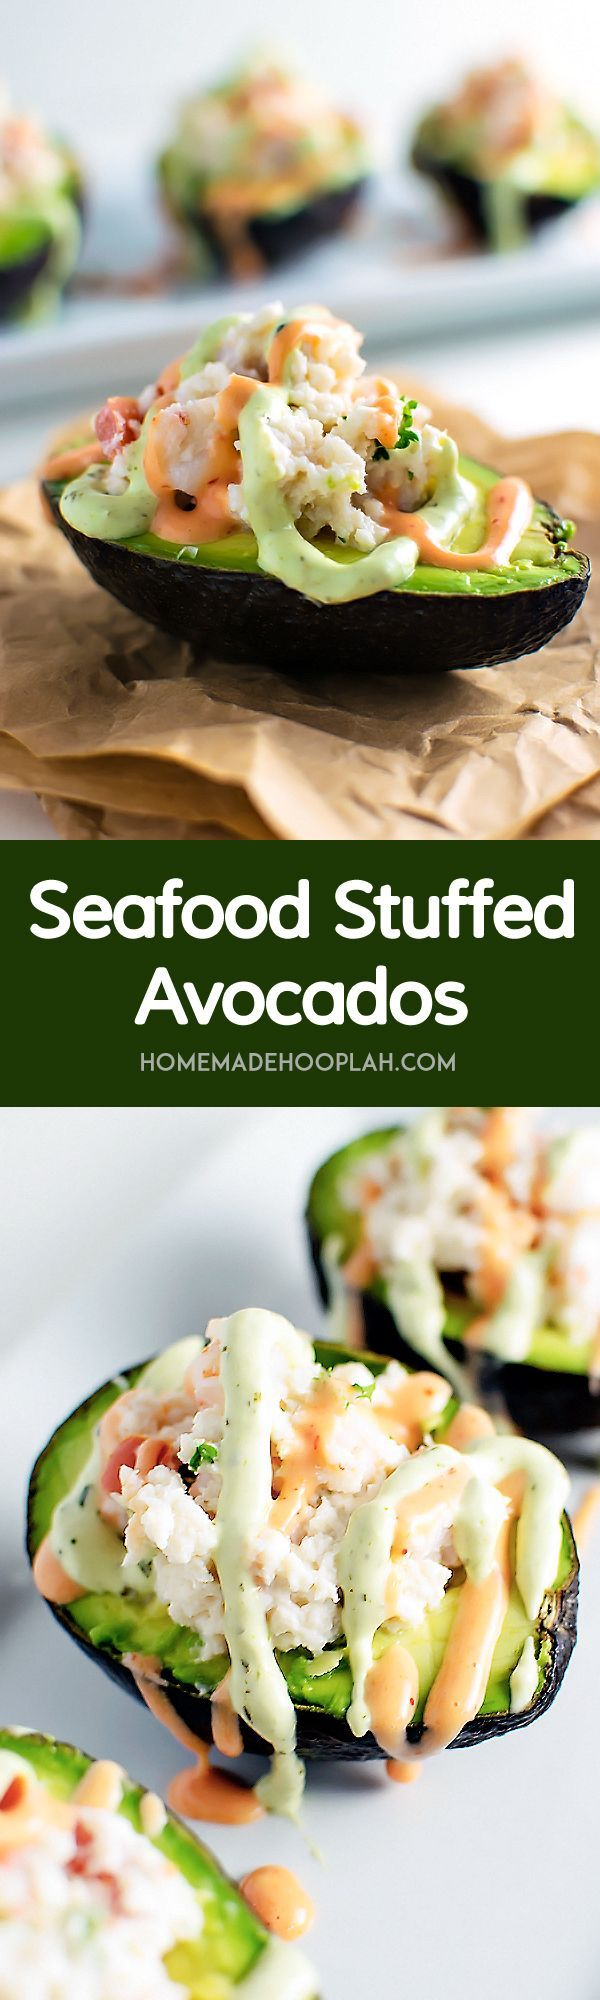 Seafood Stuffed Avocados! Halved avocados filled with shrimp, crab, and tomato and then drizzled with sriracha and avocado cream on top. | http://HomeamdeHooplah.com